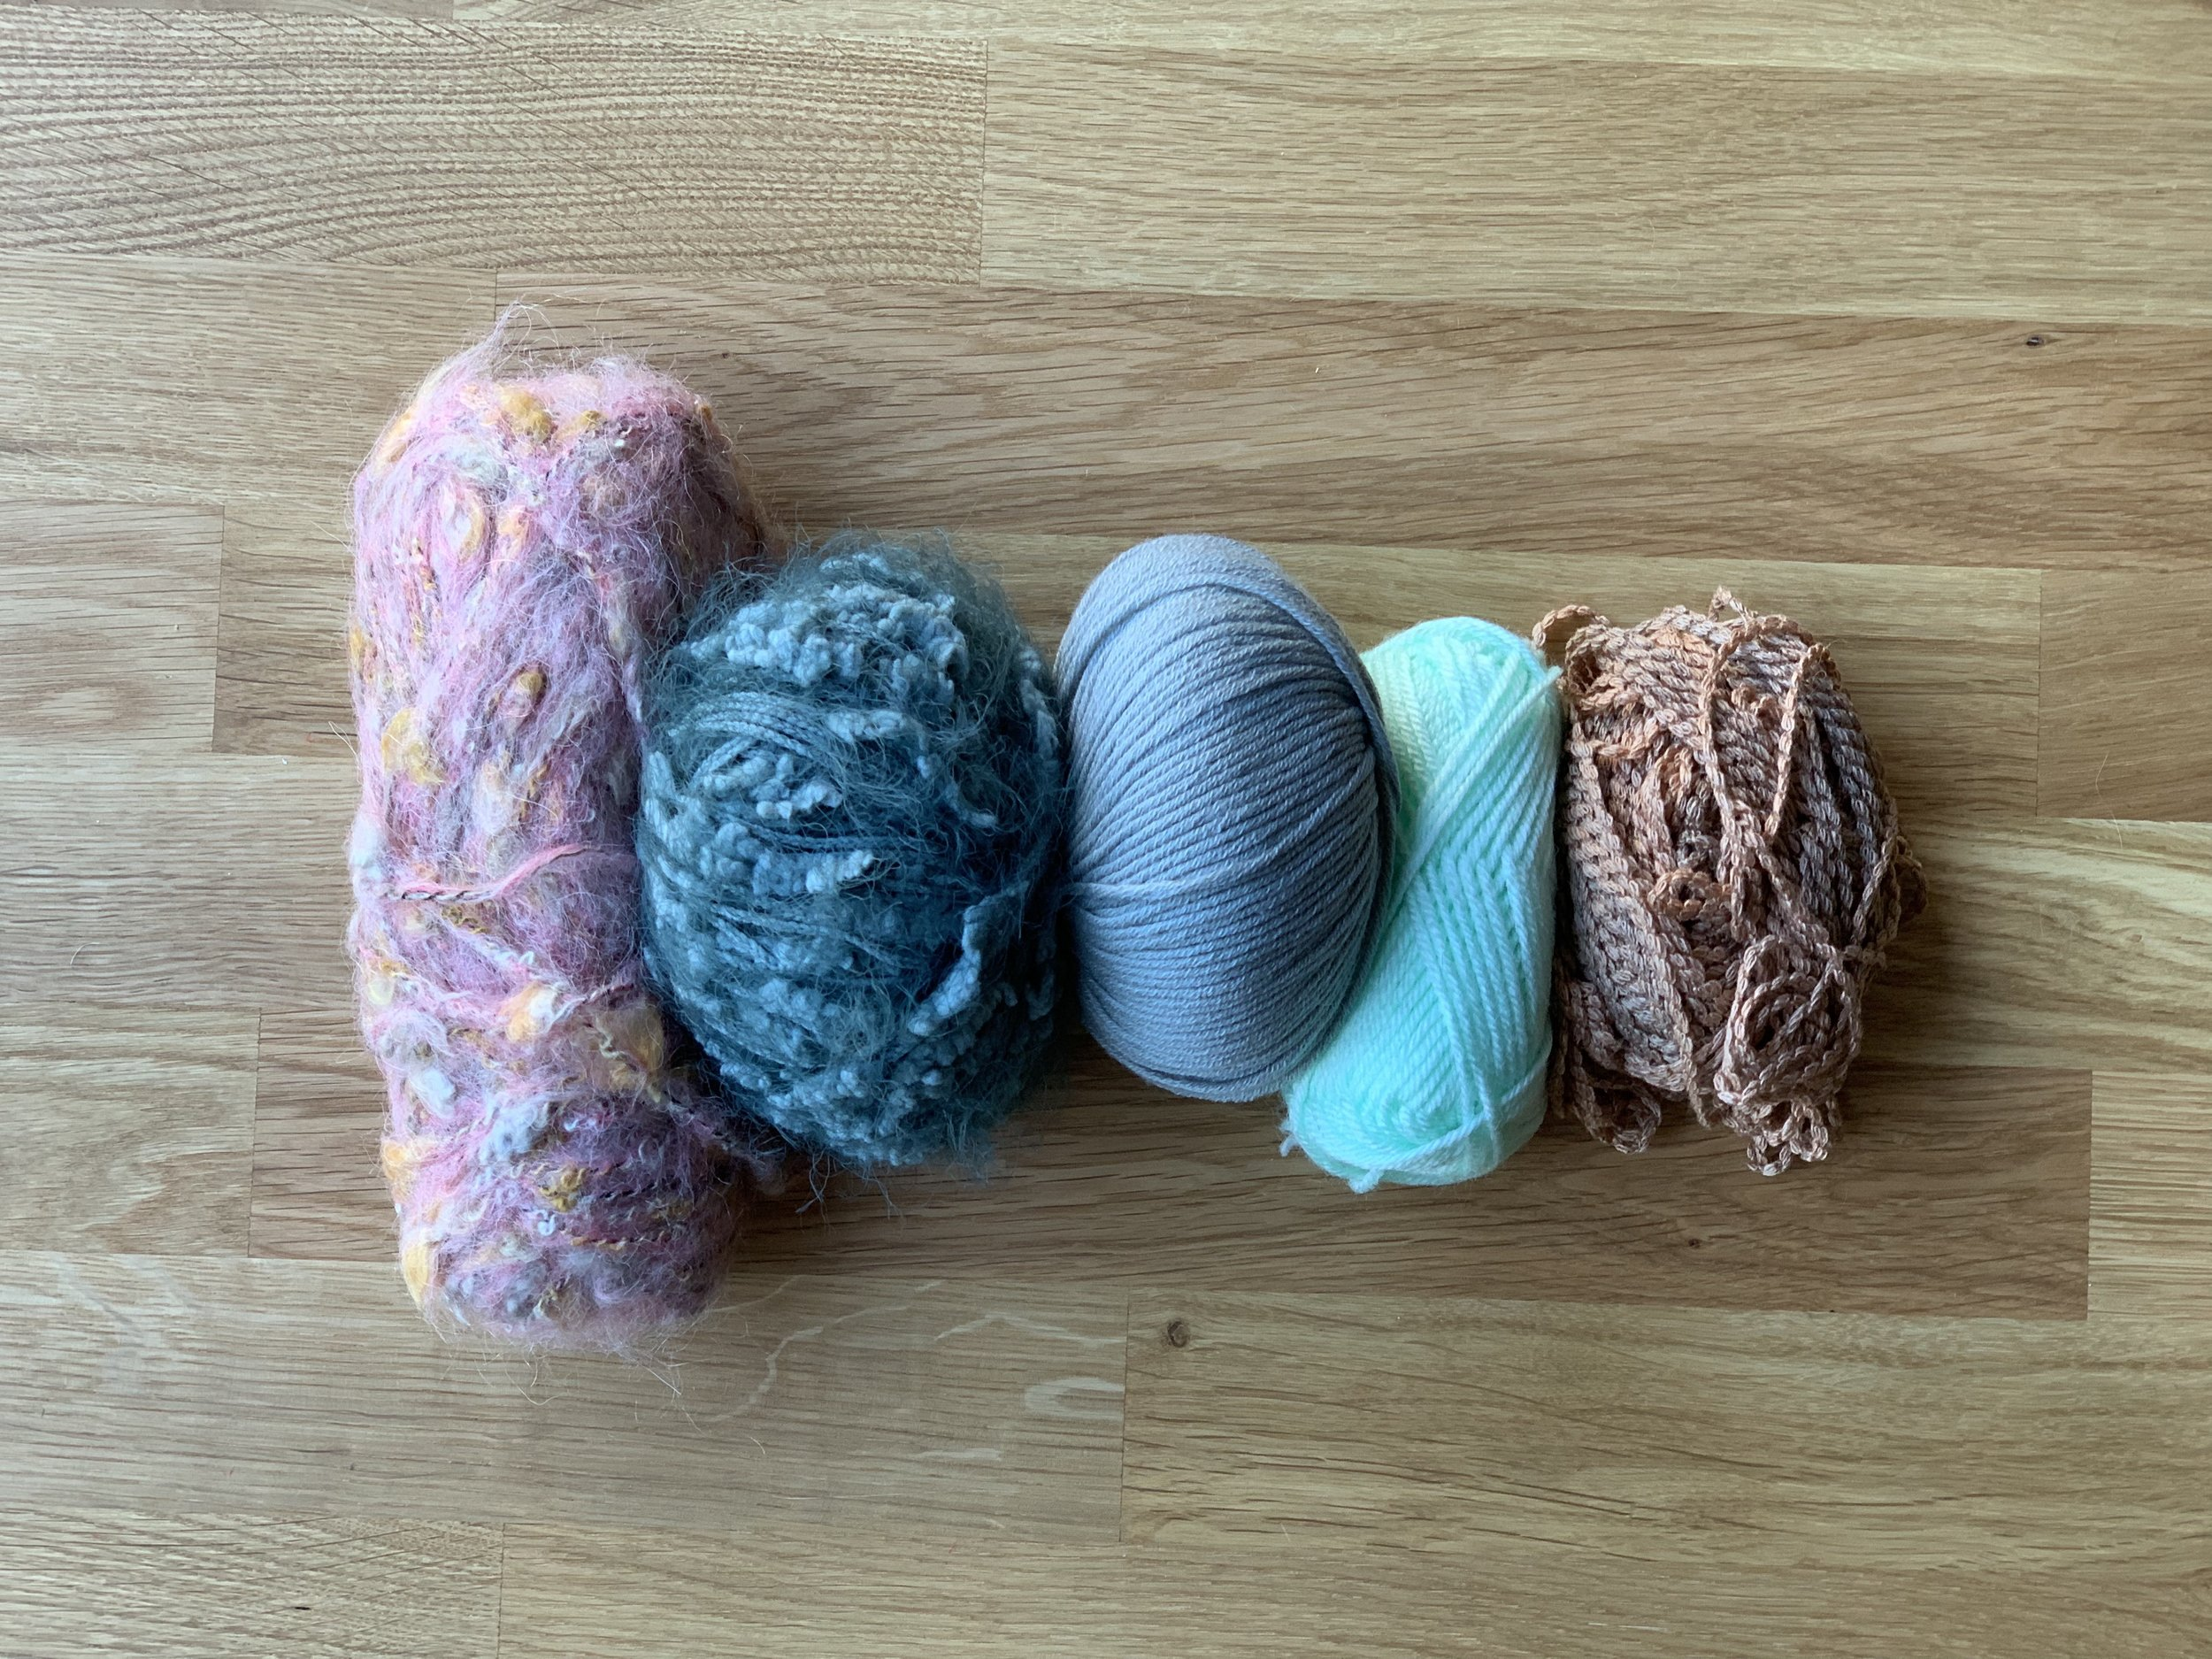 seaglass beach yarn kit.jpg